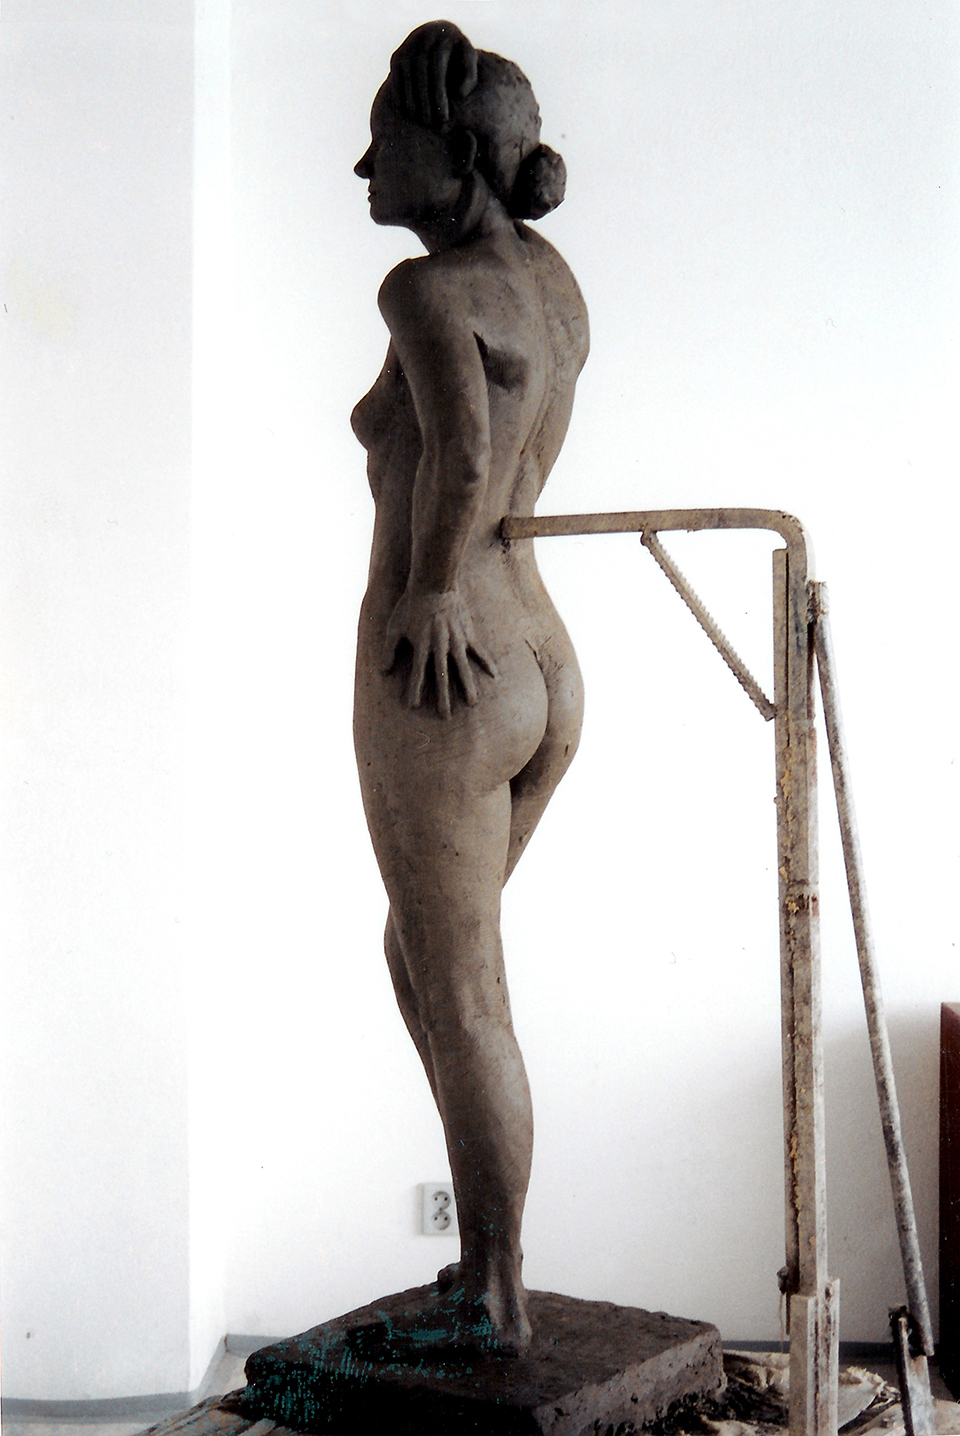 technique: clay dimensions: life size year: 2000